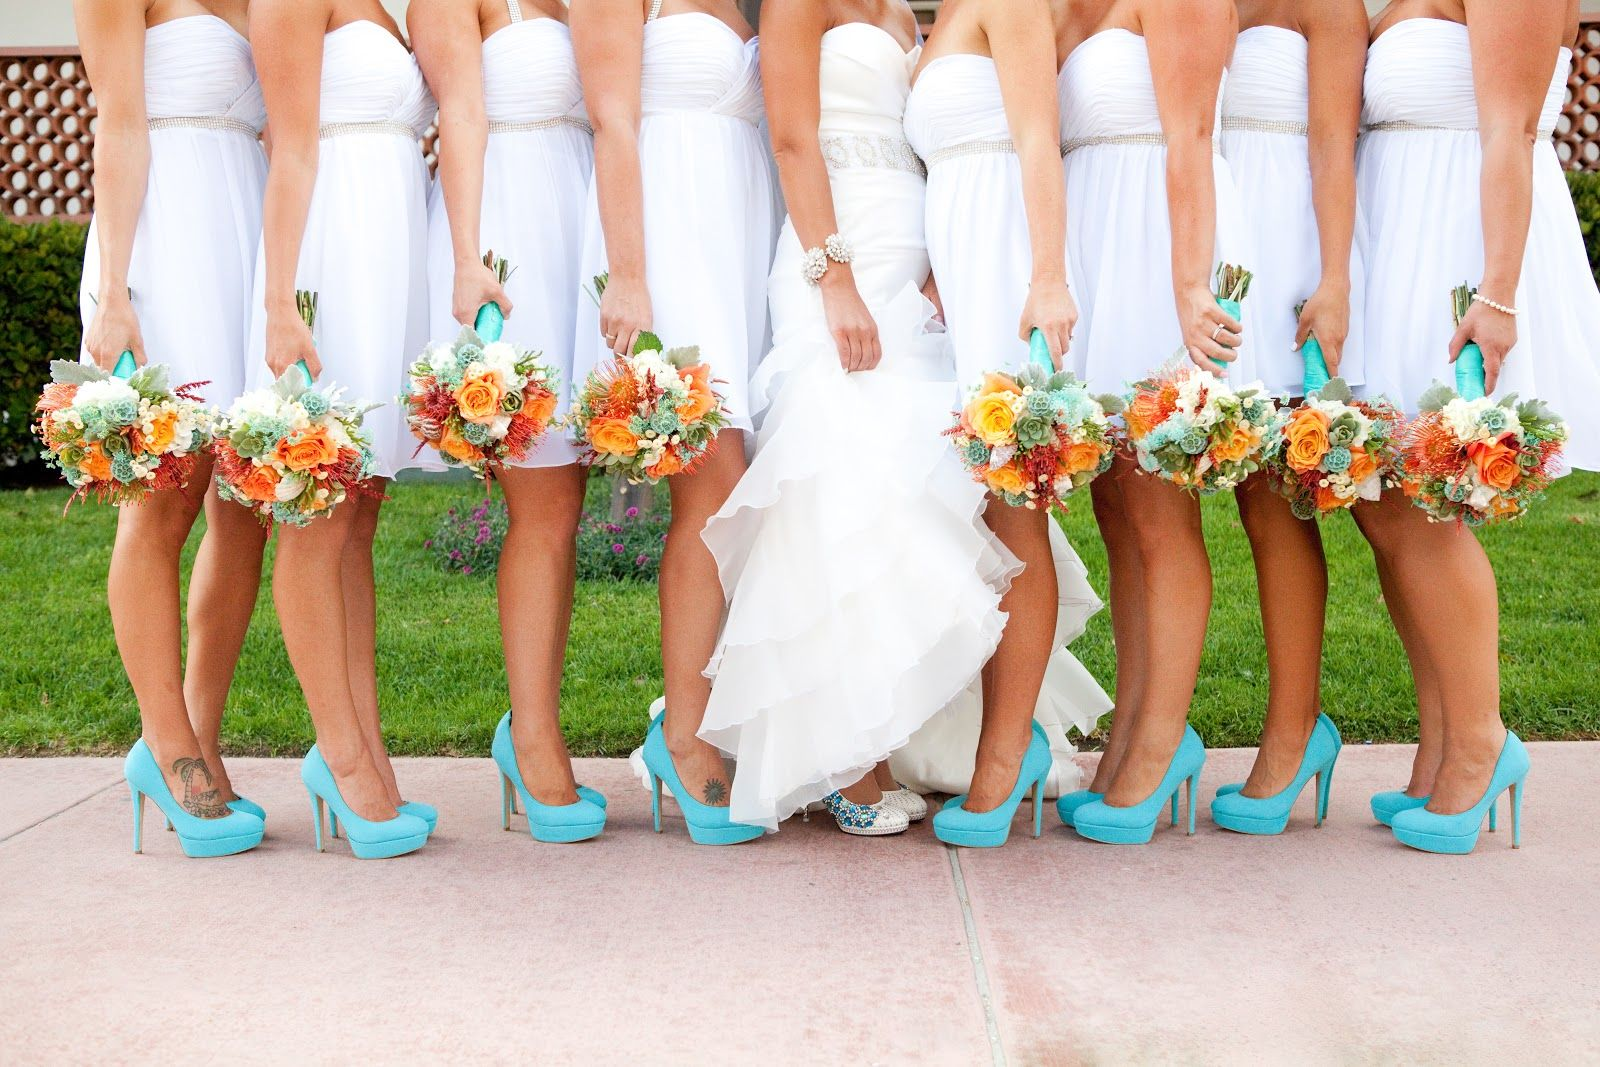 Matching shoes...love... even if it is just for a picture or little while....